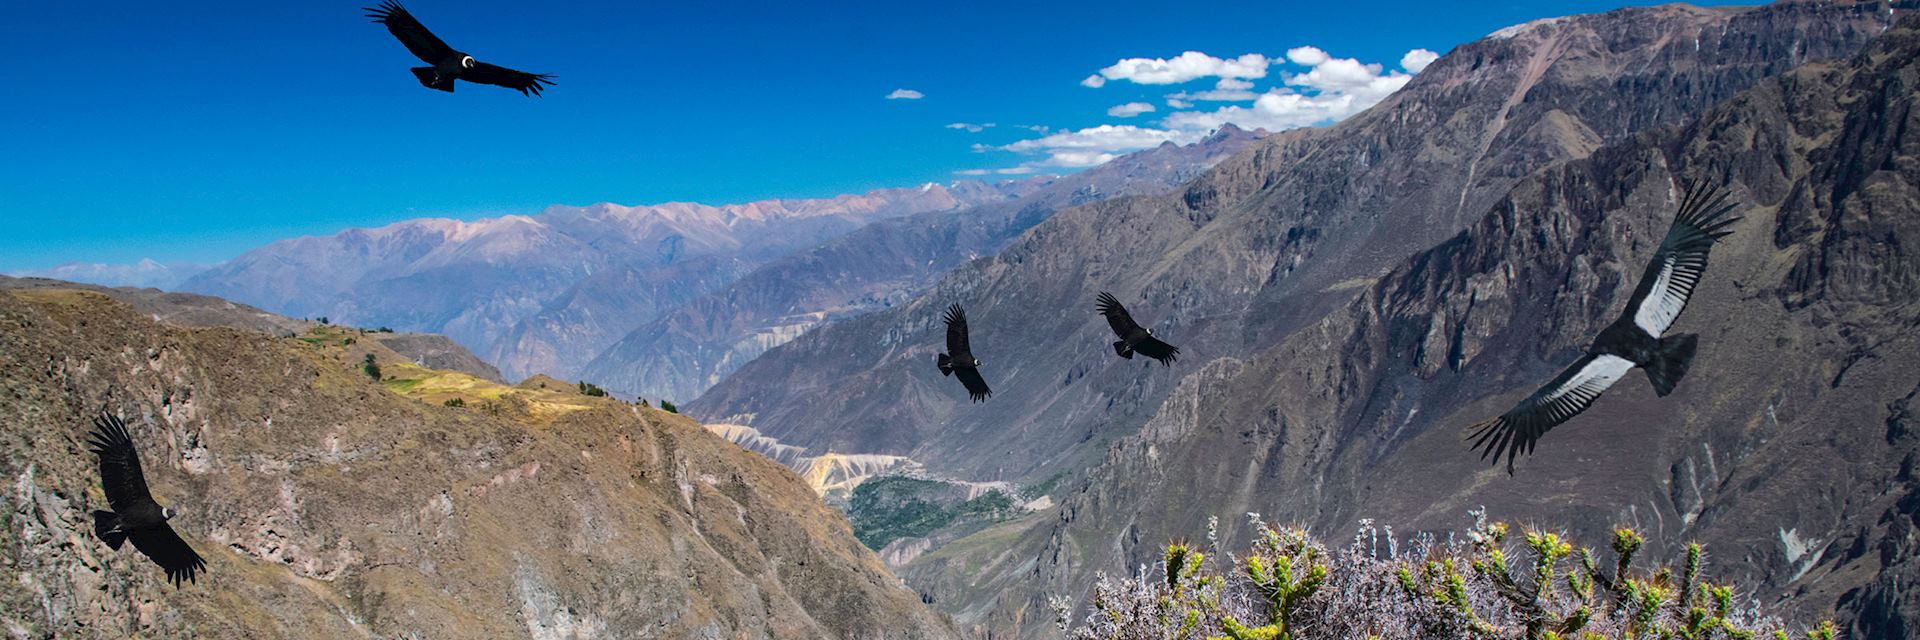 Condors flying above Colca Canyon